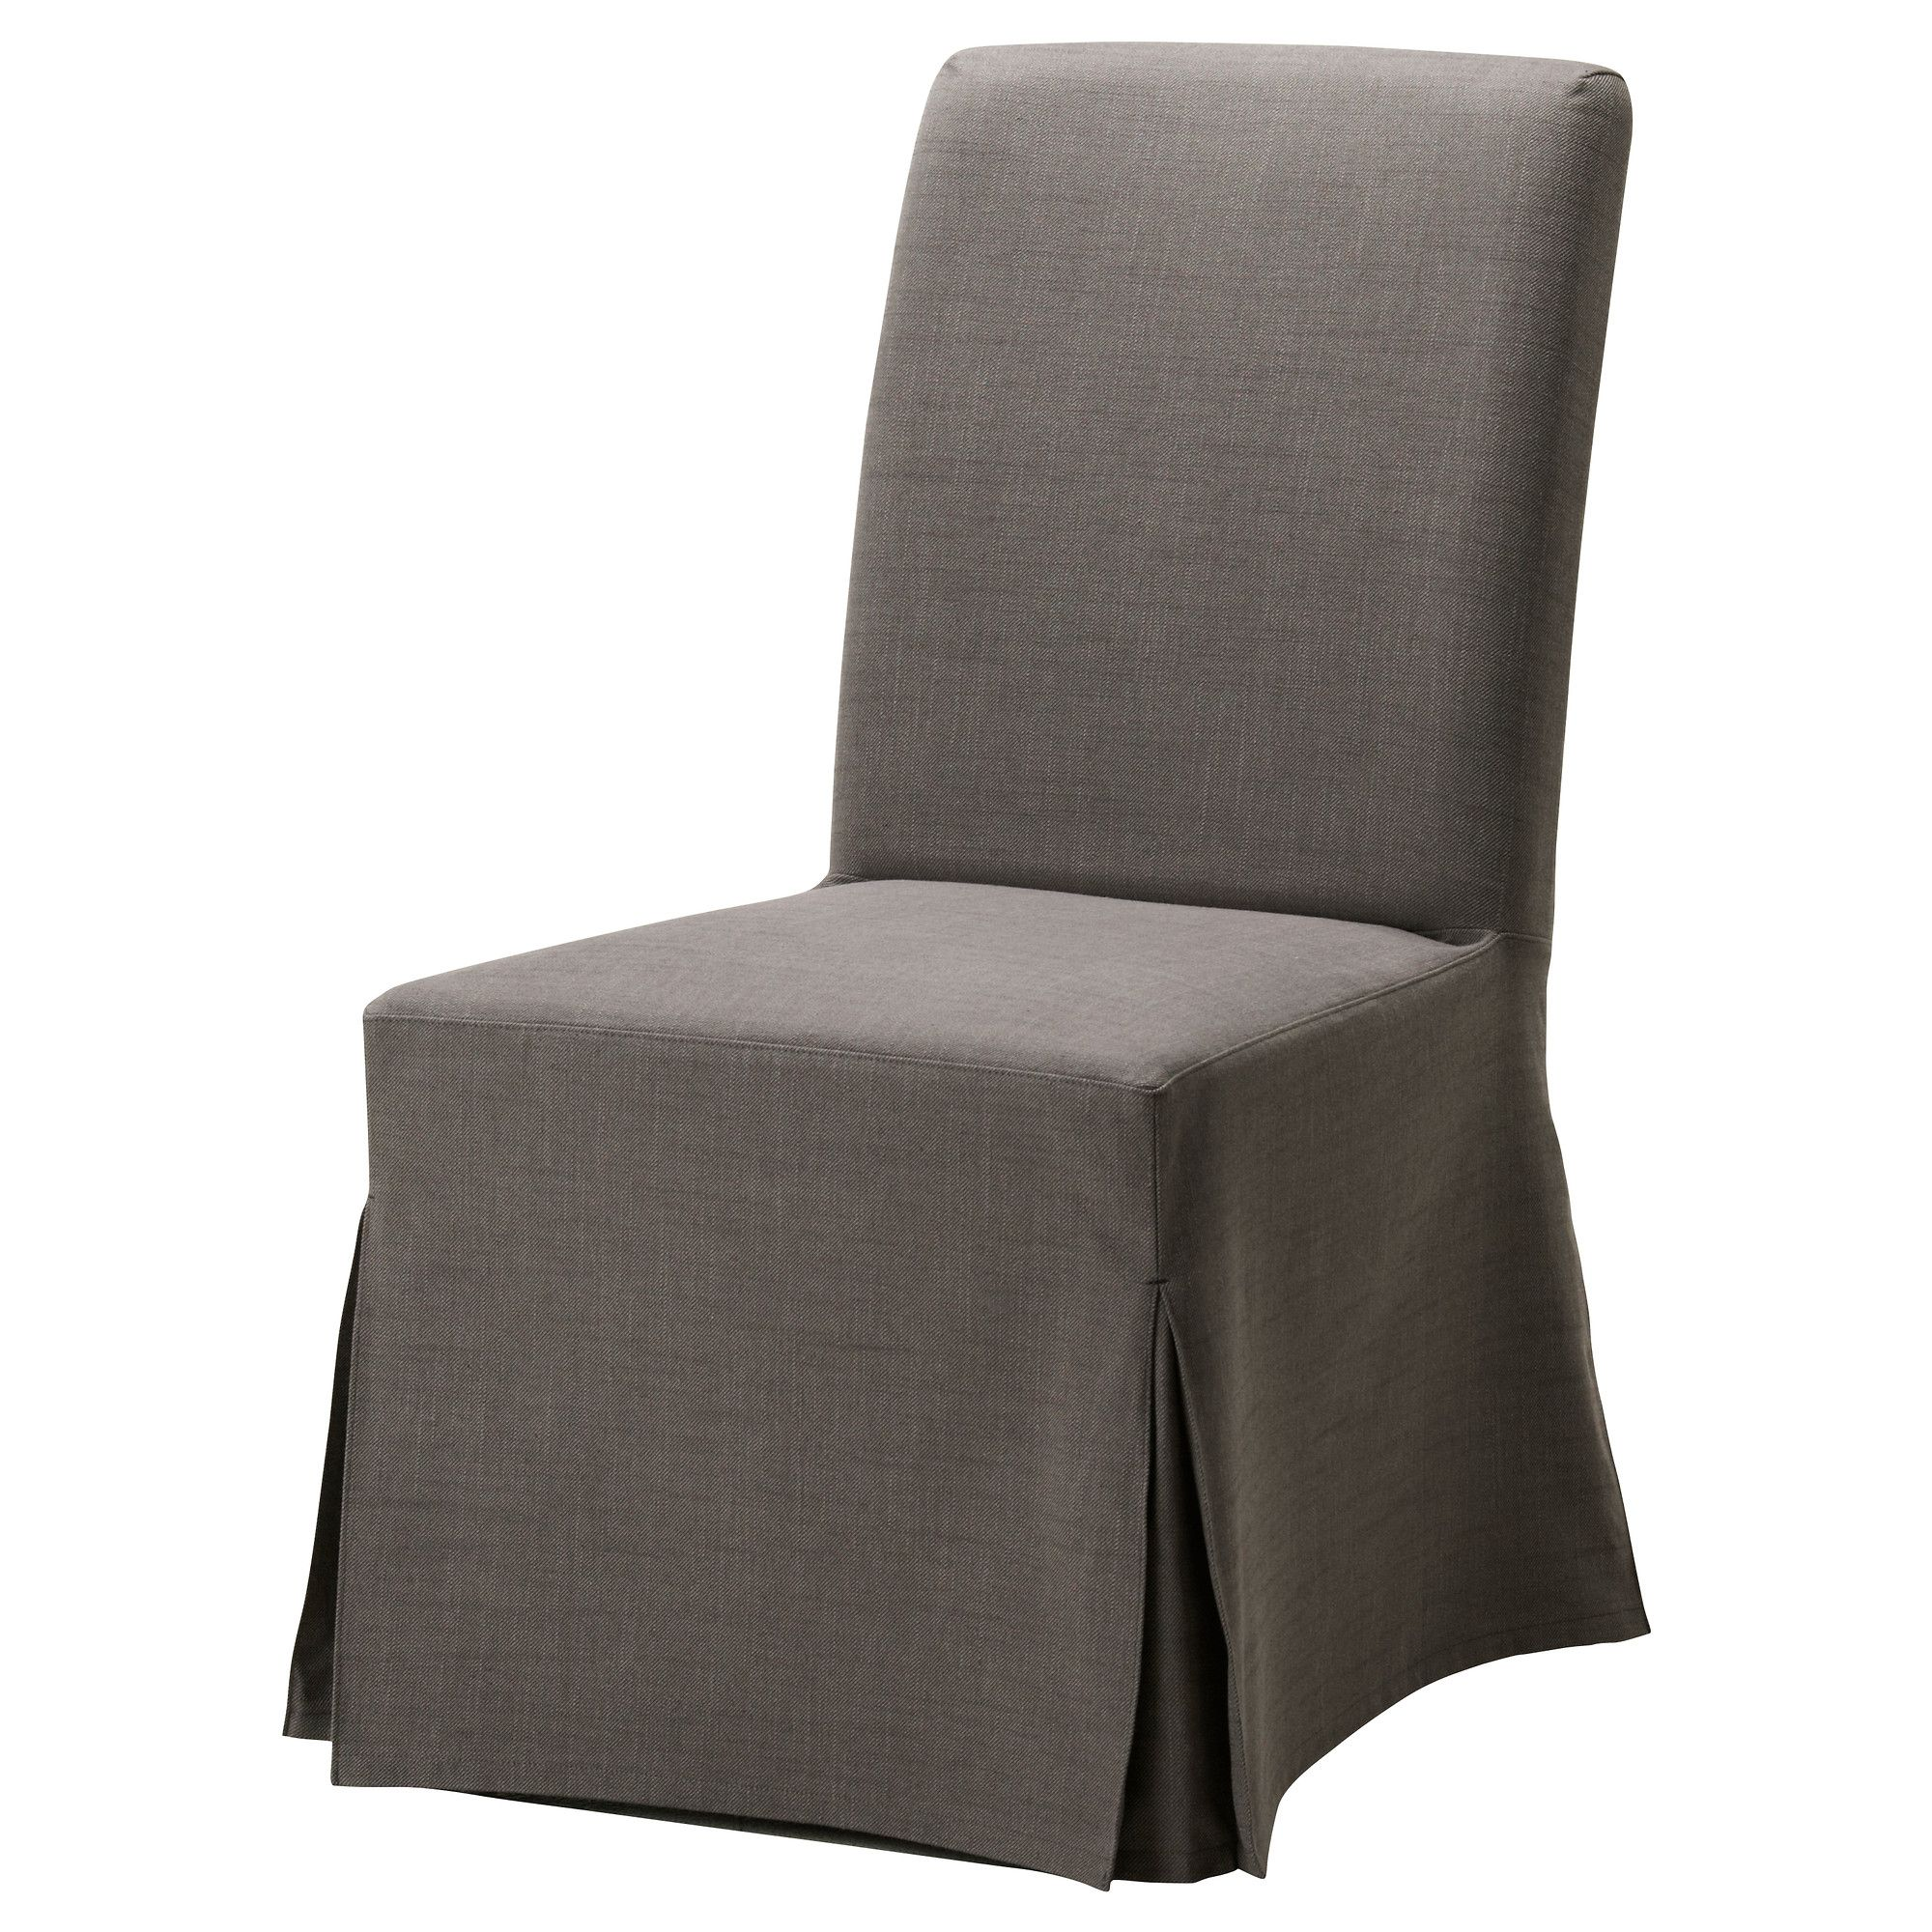 US Furniture and Home Furnishings Henriksdal chair